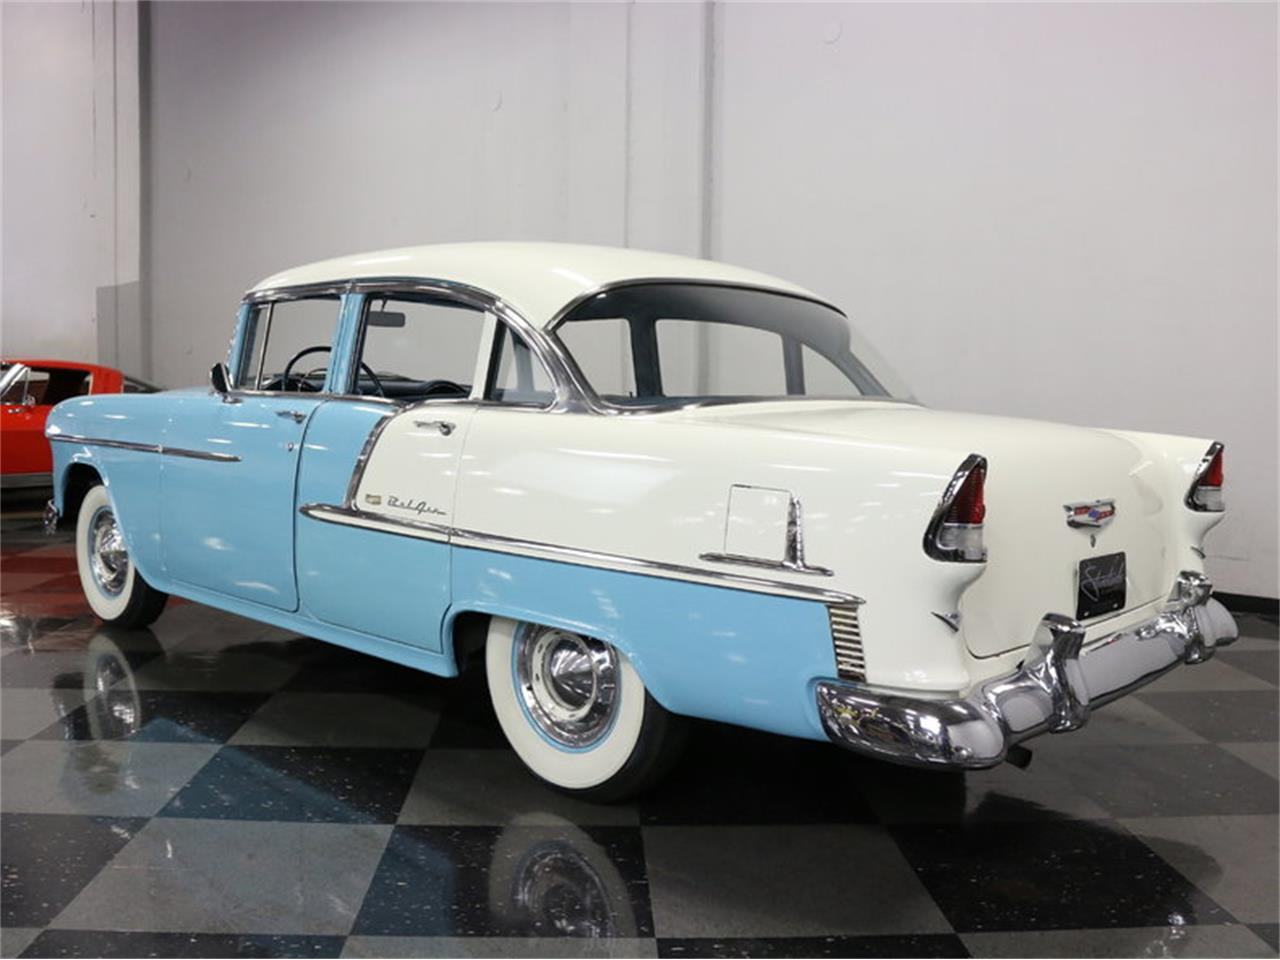 Large Picture of Classic 1955 Chevrolet Bel Air located in Texas - $25,995.00 Offered by Streetside Classics - Dallas / Fort Worth - LSOT